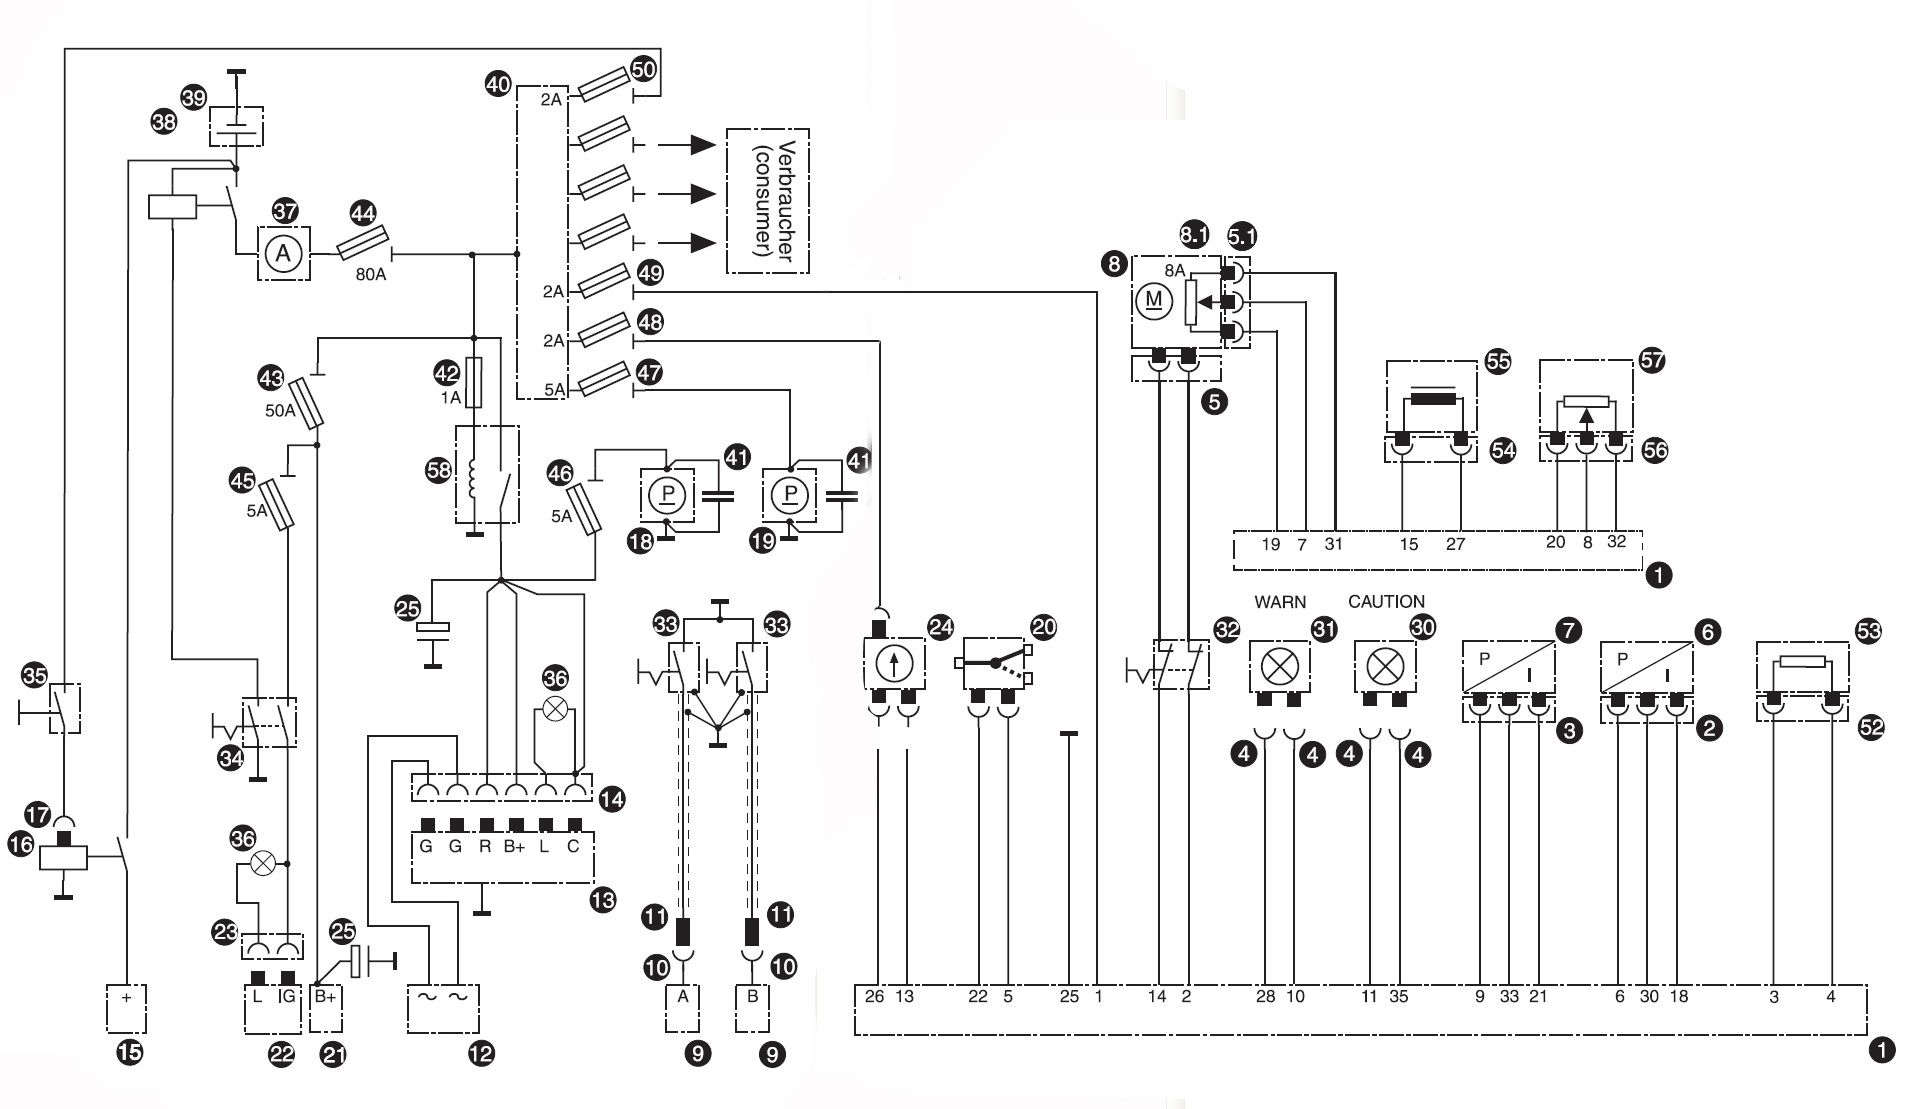 Aeroelectric Connection Manufacturers Data In The Circuit At Chip Diagrams As A Guide When Wiring Your Ignition Schematic Rotax 912 Installation Manual 914 Electrical Diagram